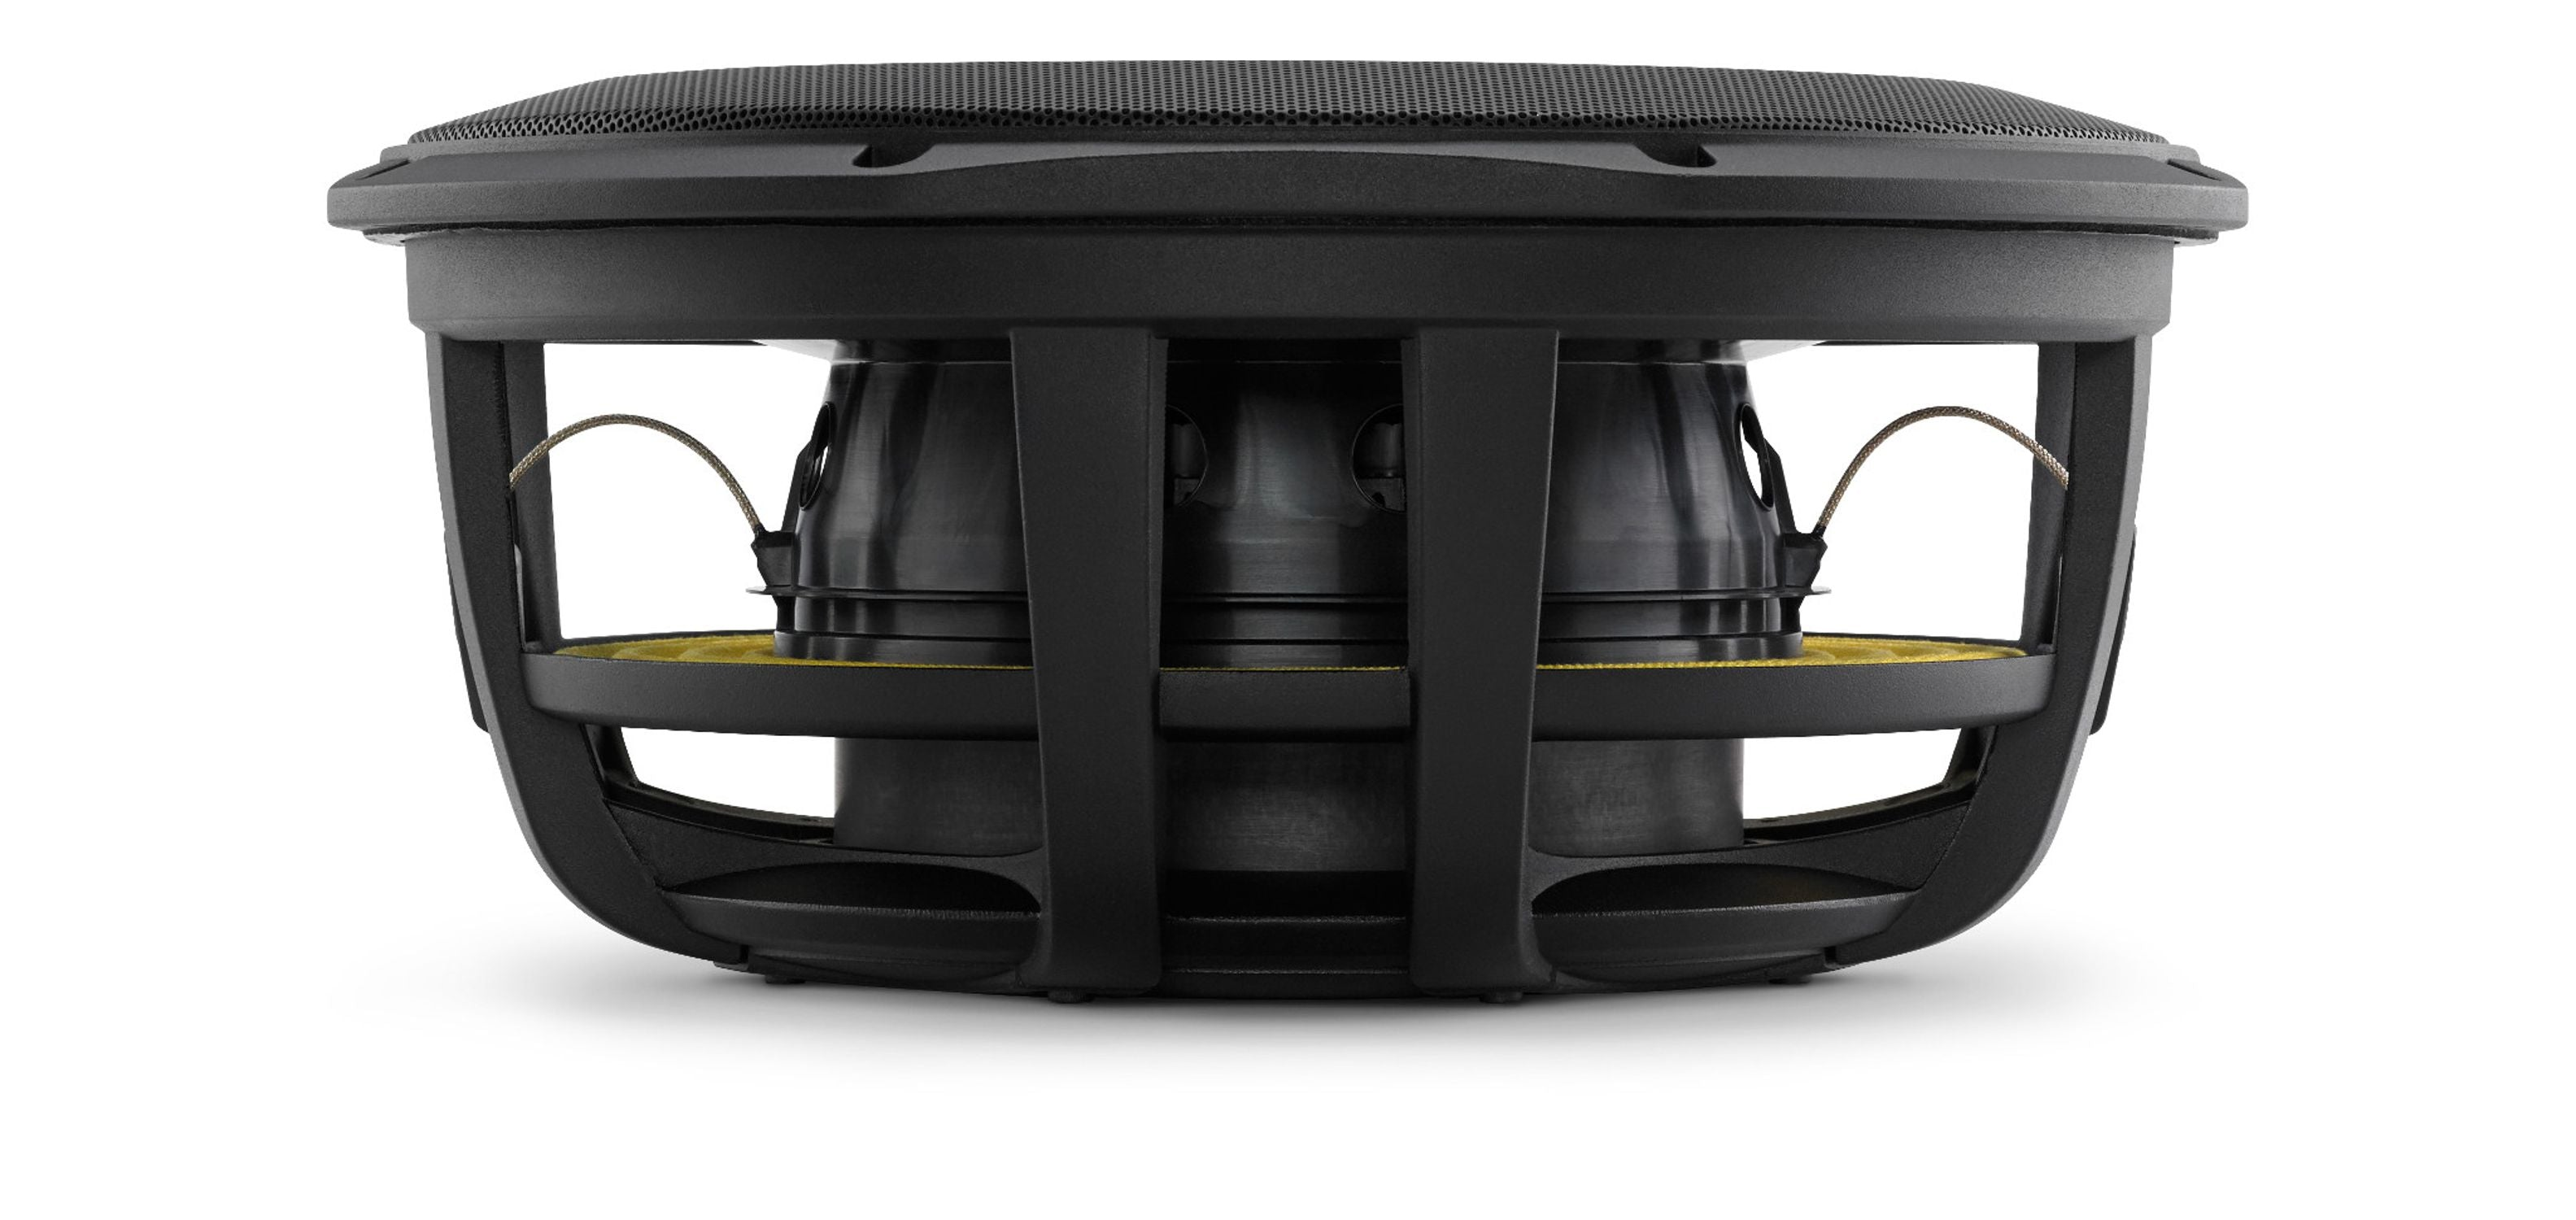 Profile of 12TW1 Subwoofer